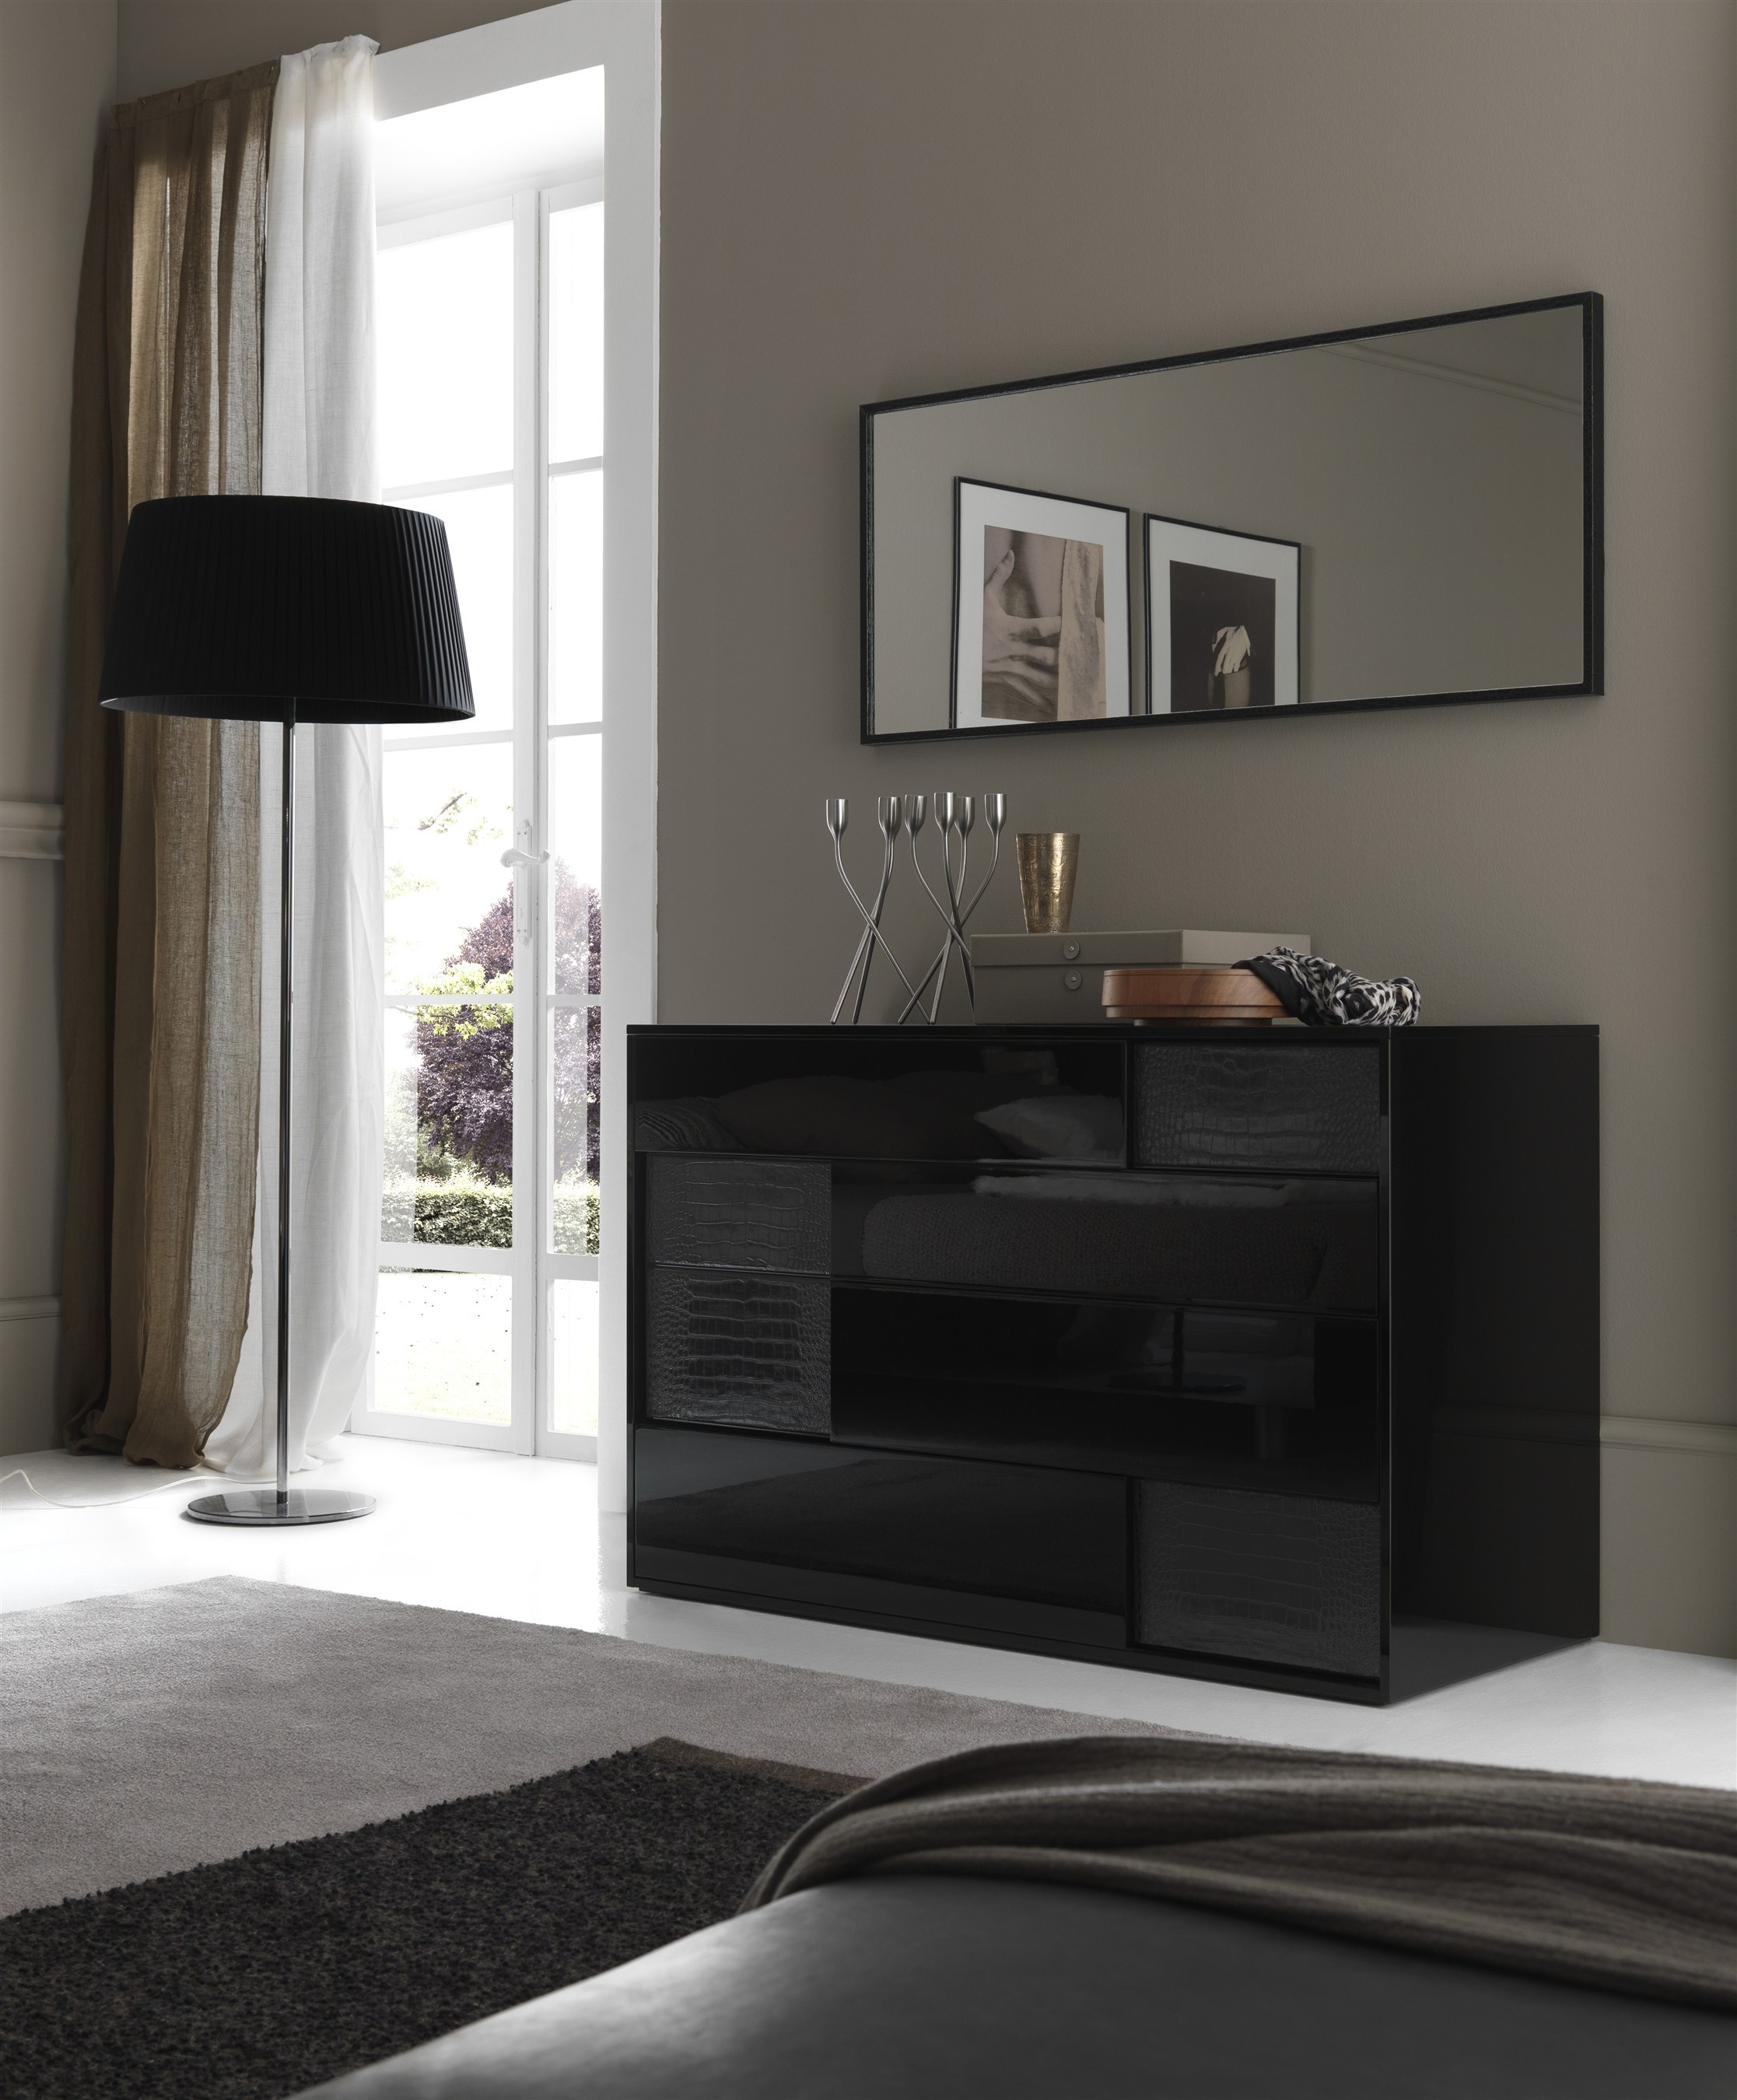 popular inspiration photos sets of and black furniture stunning pics colour ikea bedroom